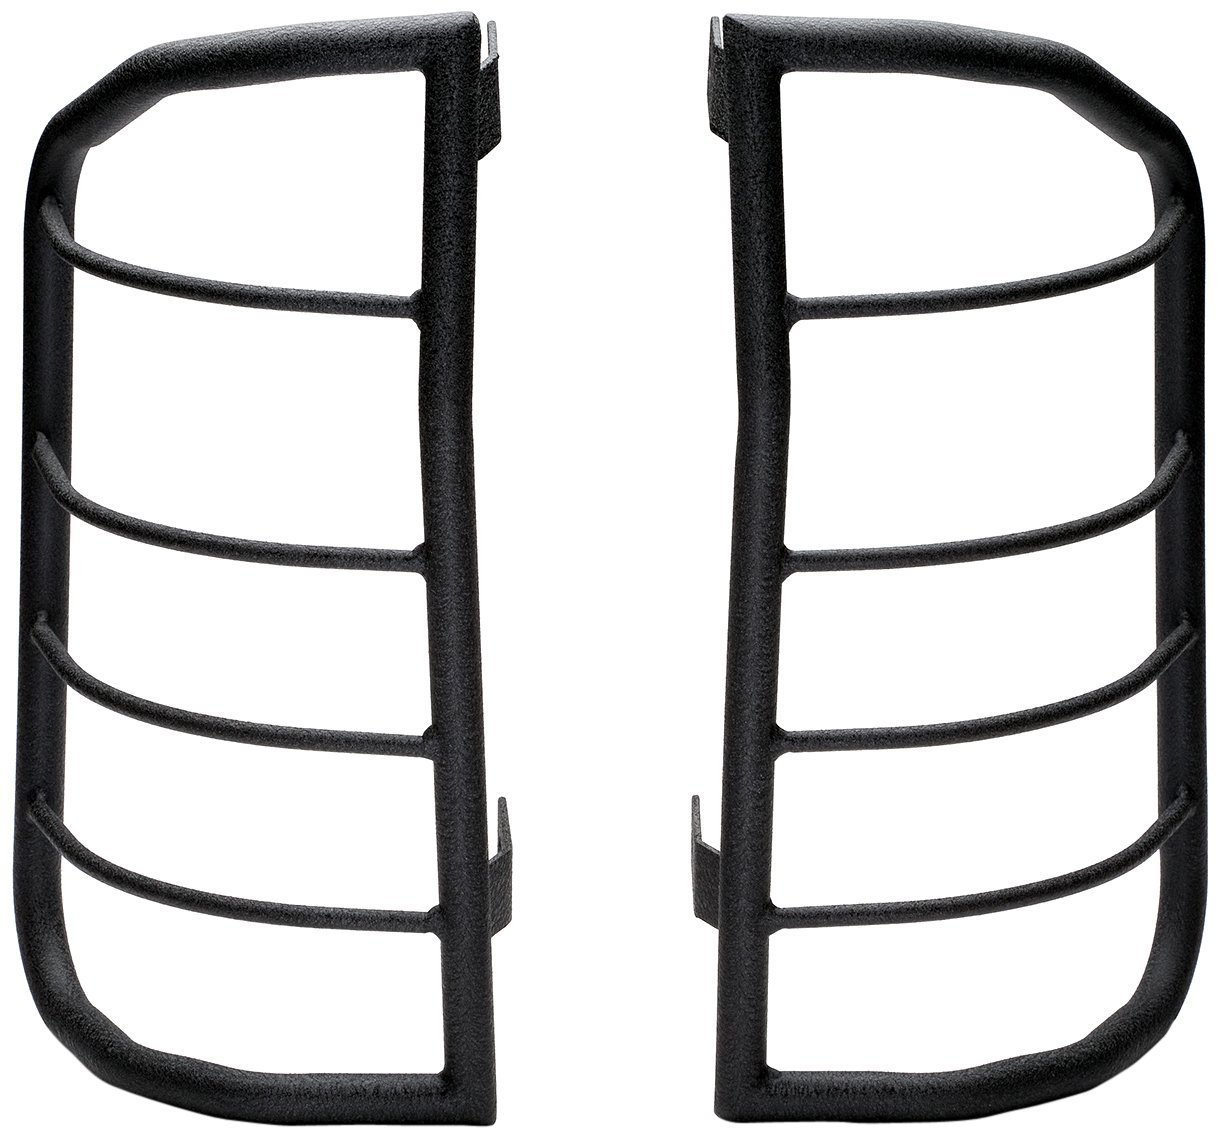 2004-2006 Toyota Tundra Tail Light Guard; Bar Style; Powder Coated; Black; Steel; Set of 2